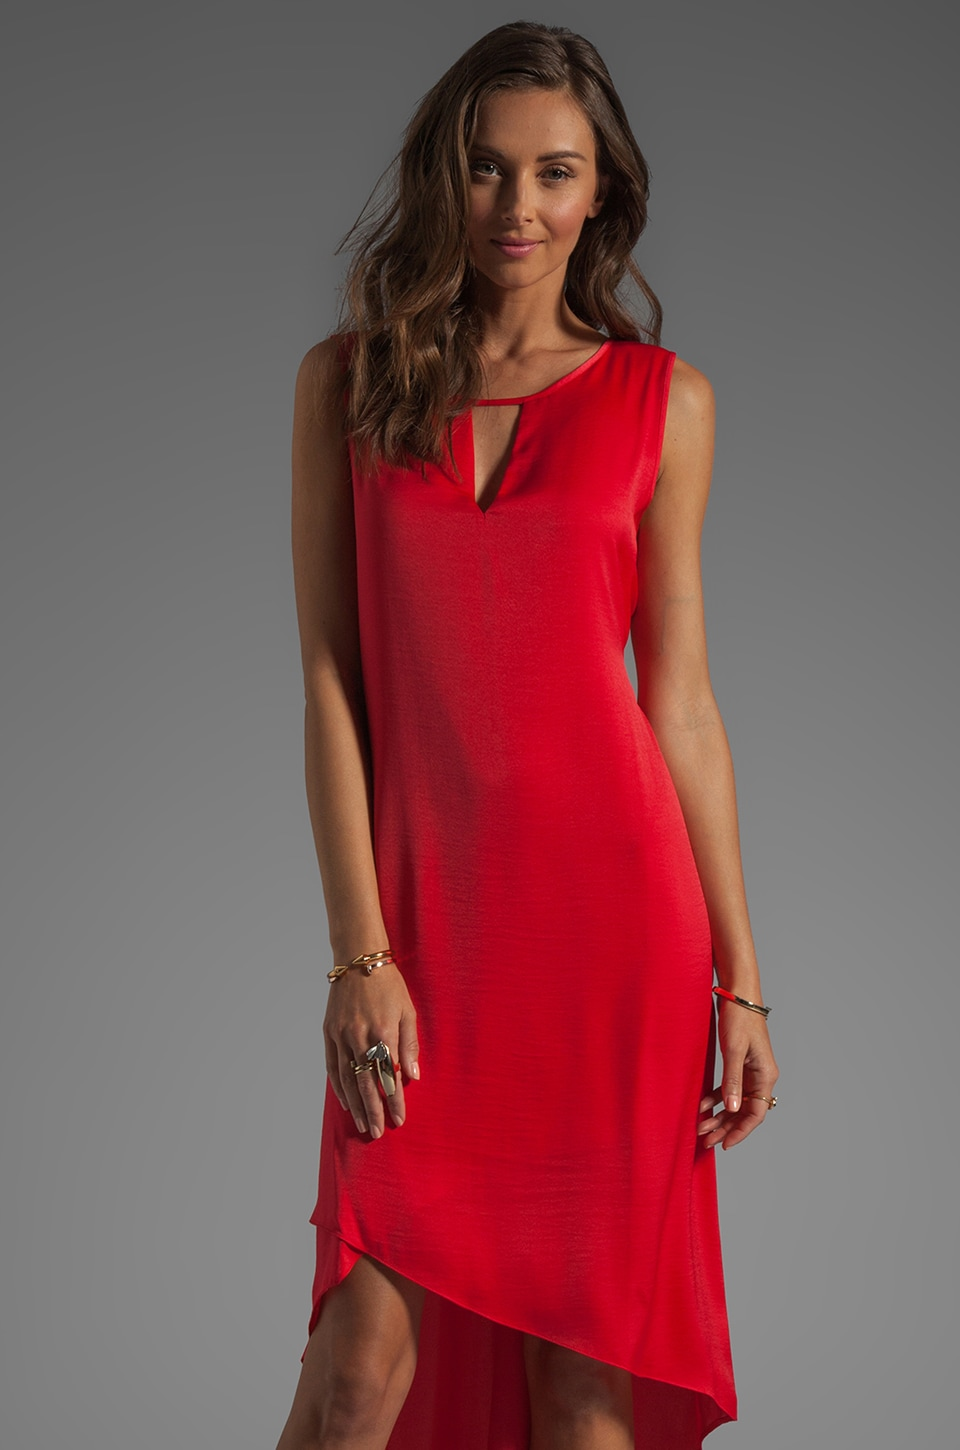 BCBGMAXAZRIA Asymmetrical Hem Dress in Lipstick Red